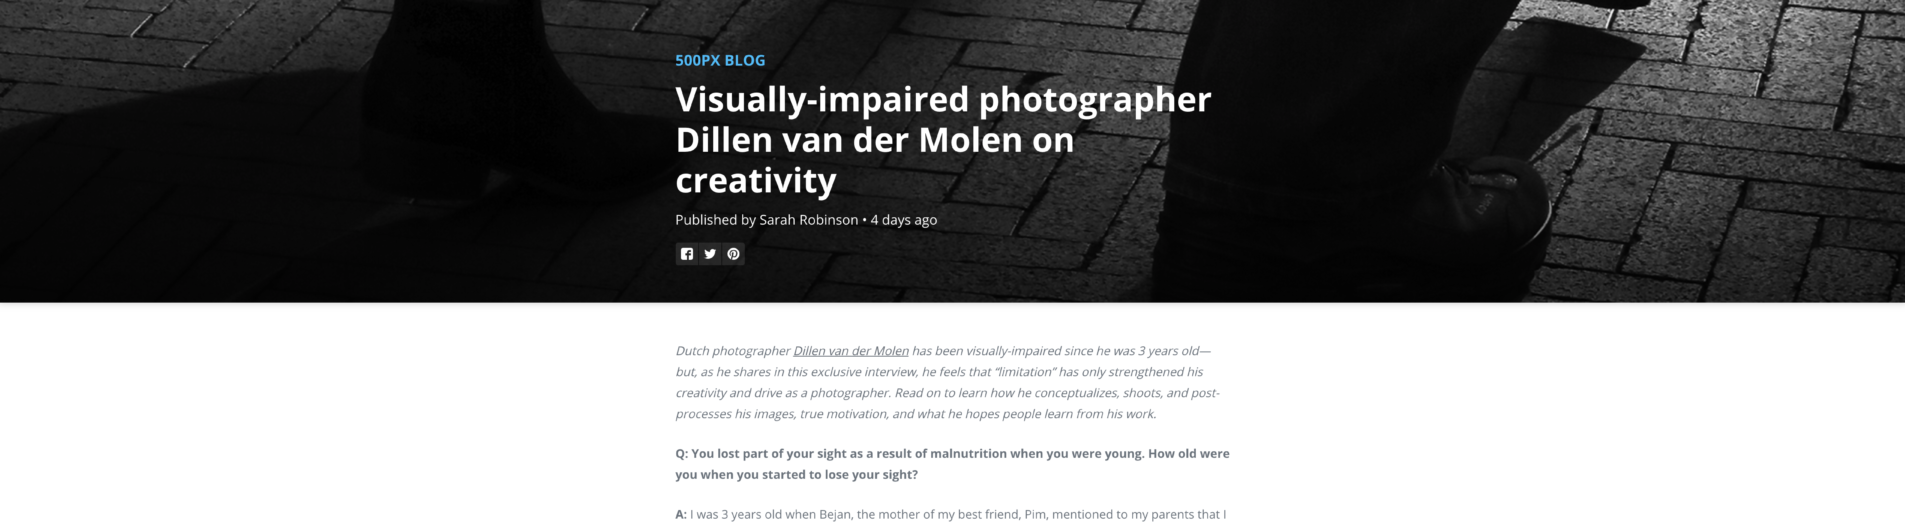 The Q&A @500px || Visually-impaired photographer Dillen van der Molen on creativity ||